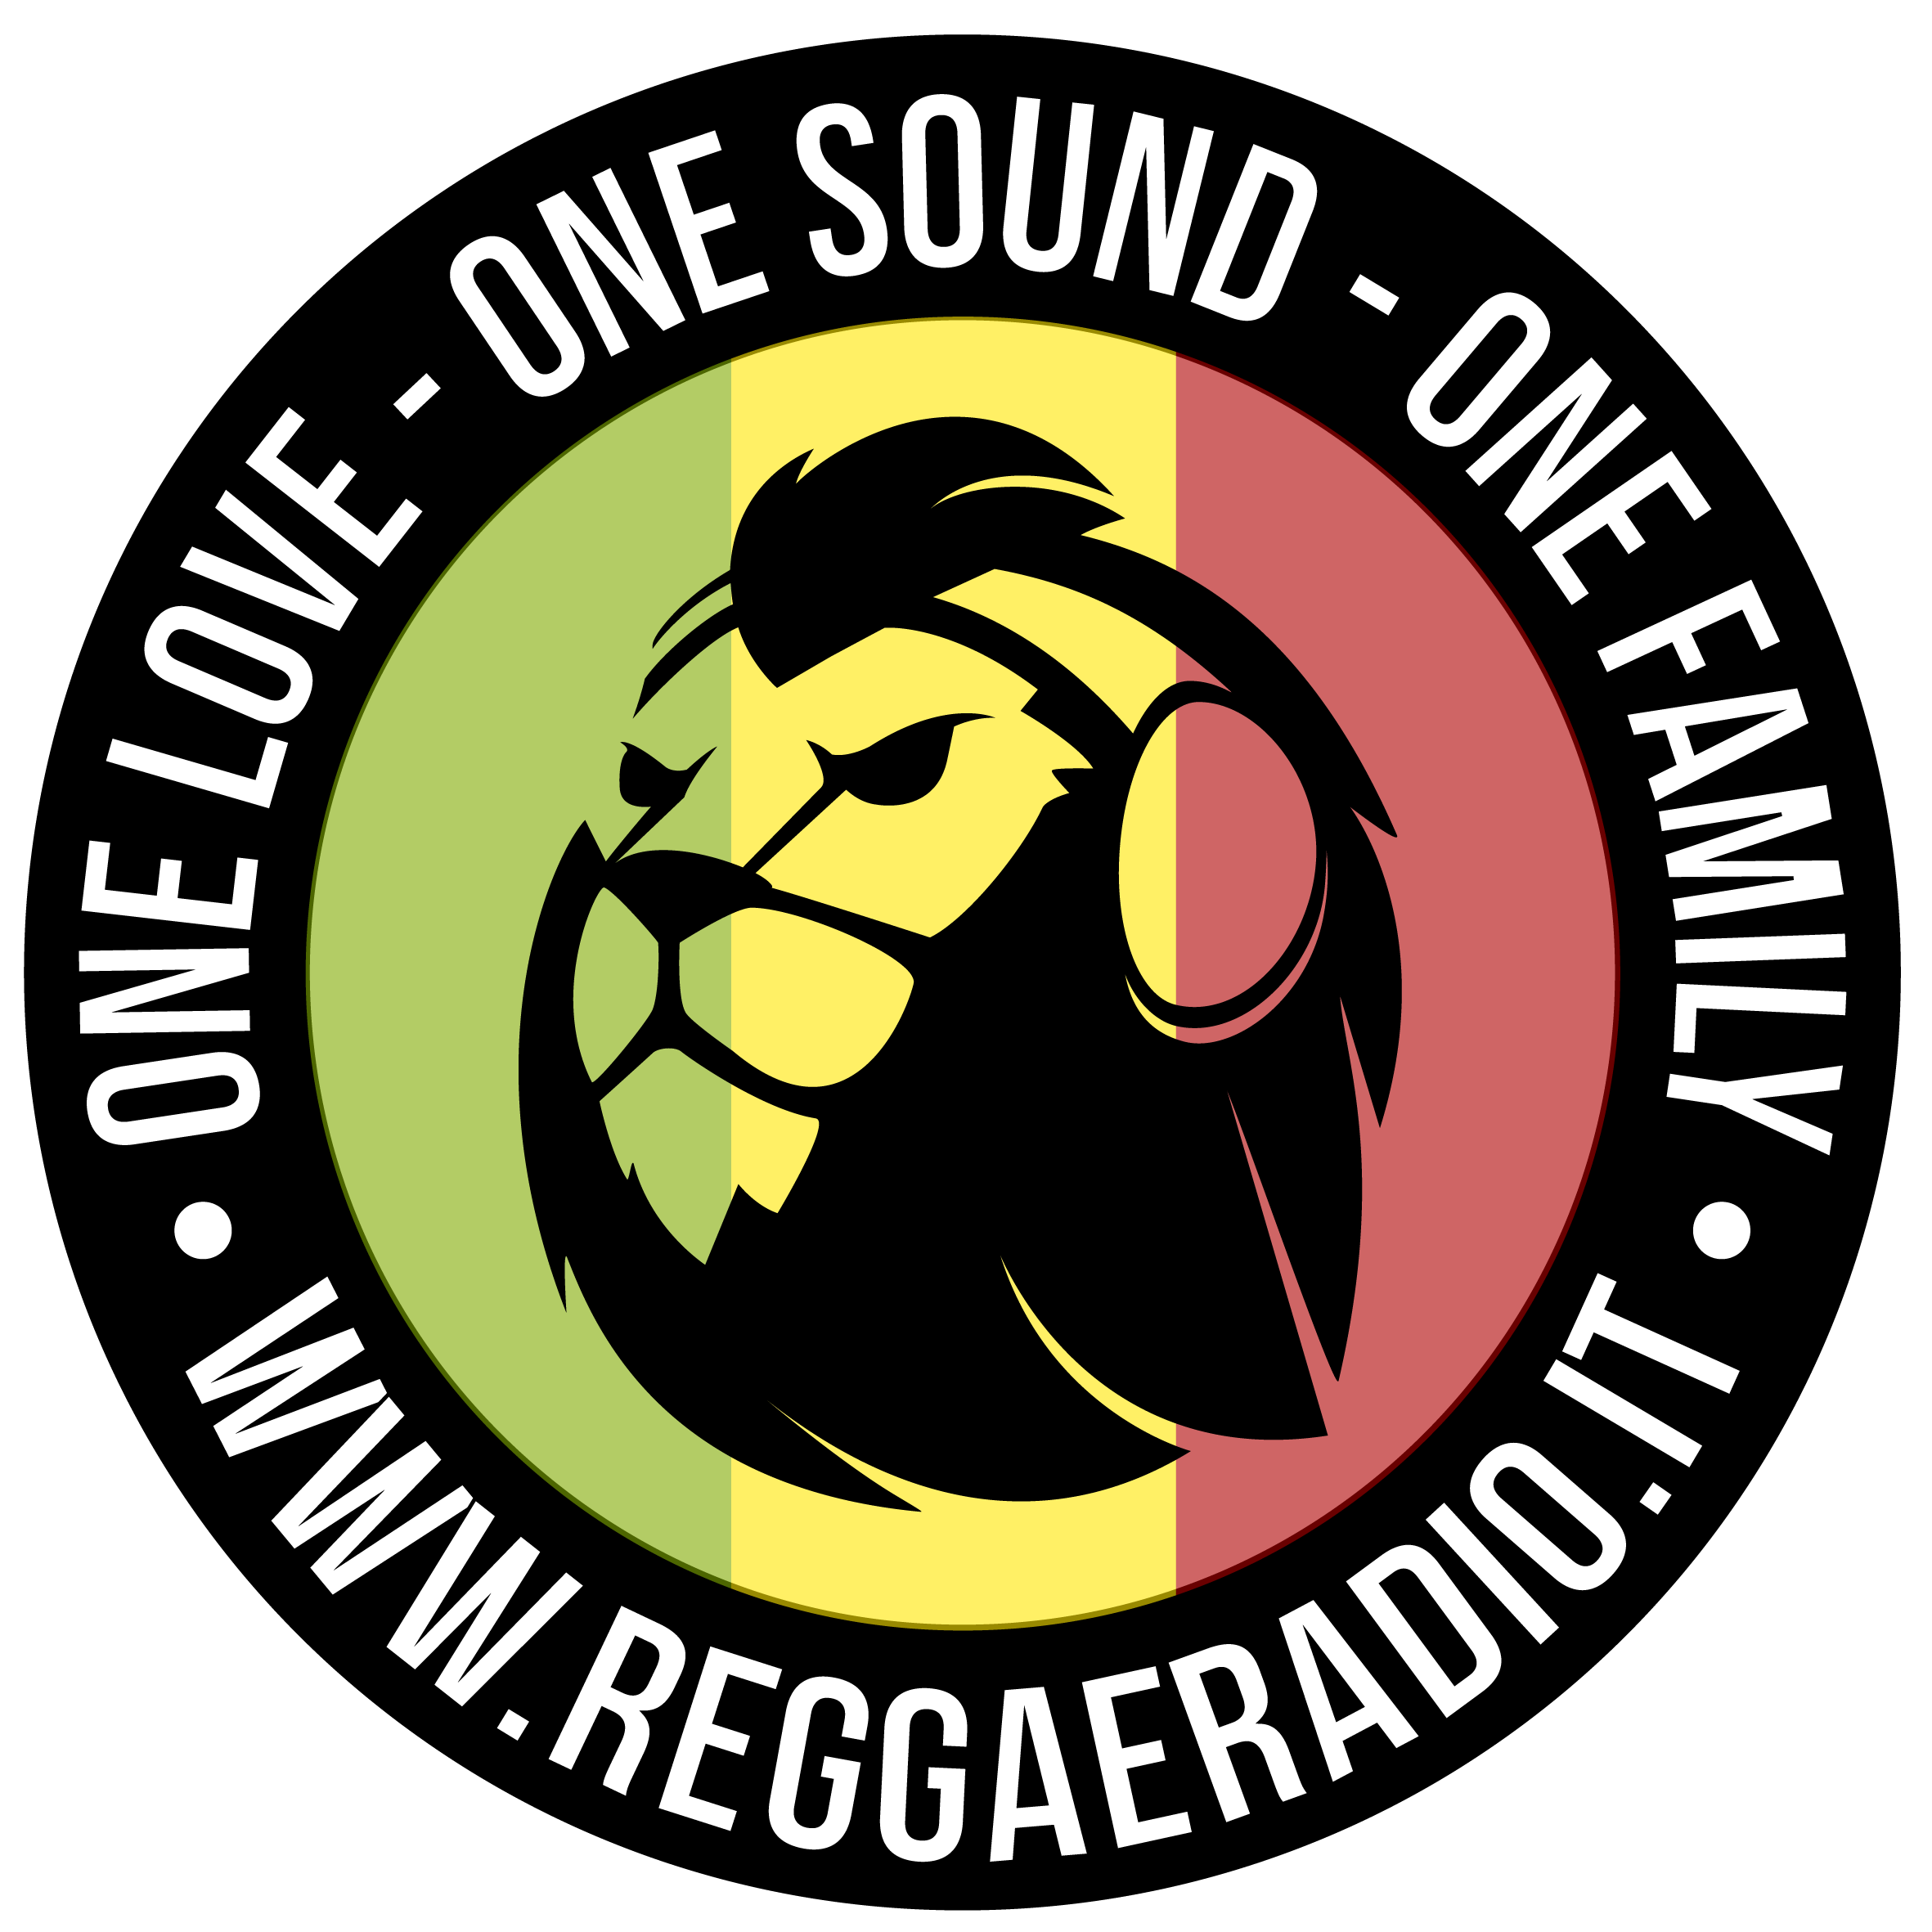 Logo Reggaeradio.it